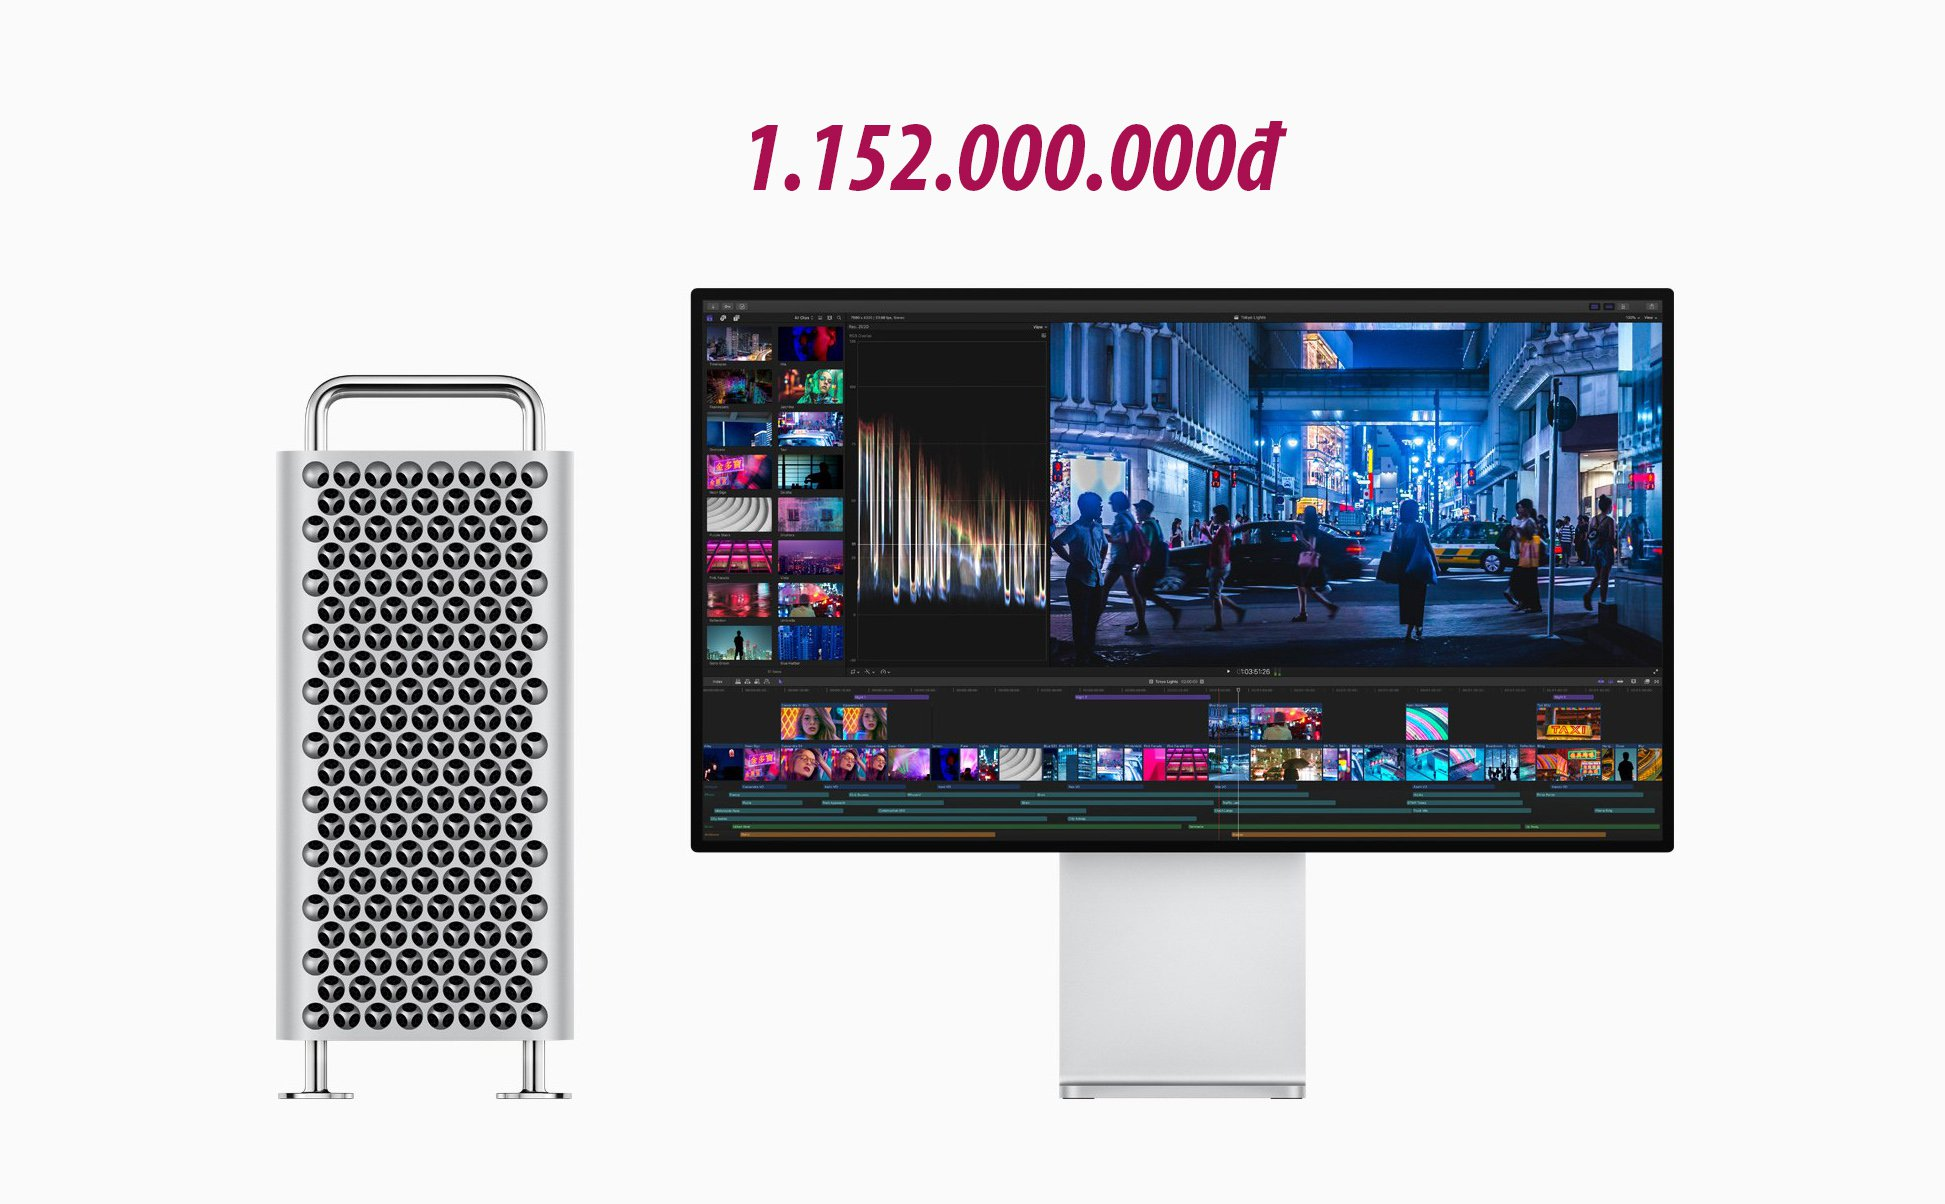 The highest configuration Mac Pro will cost more than 1.1 billion VND